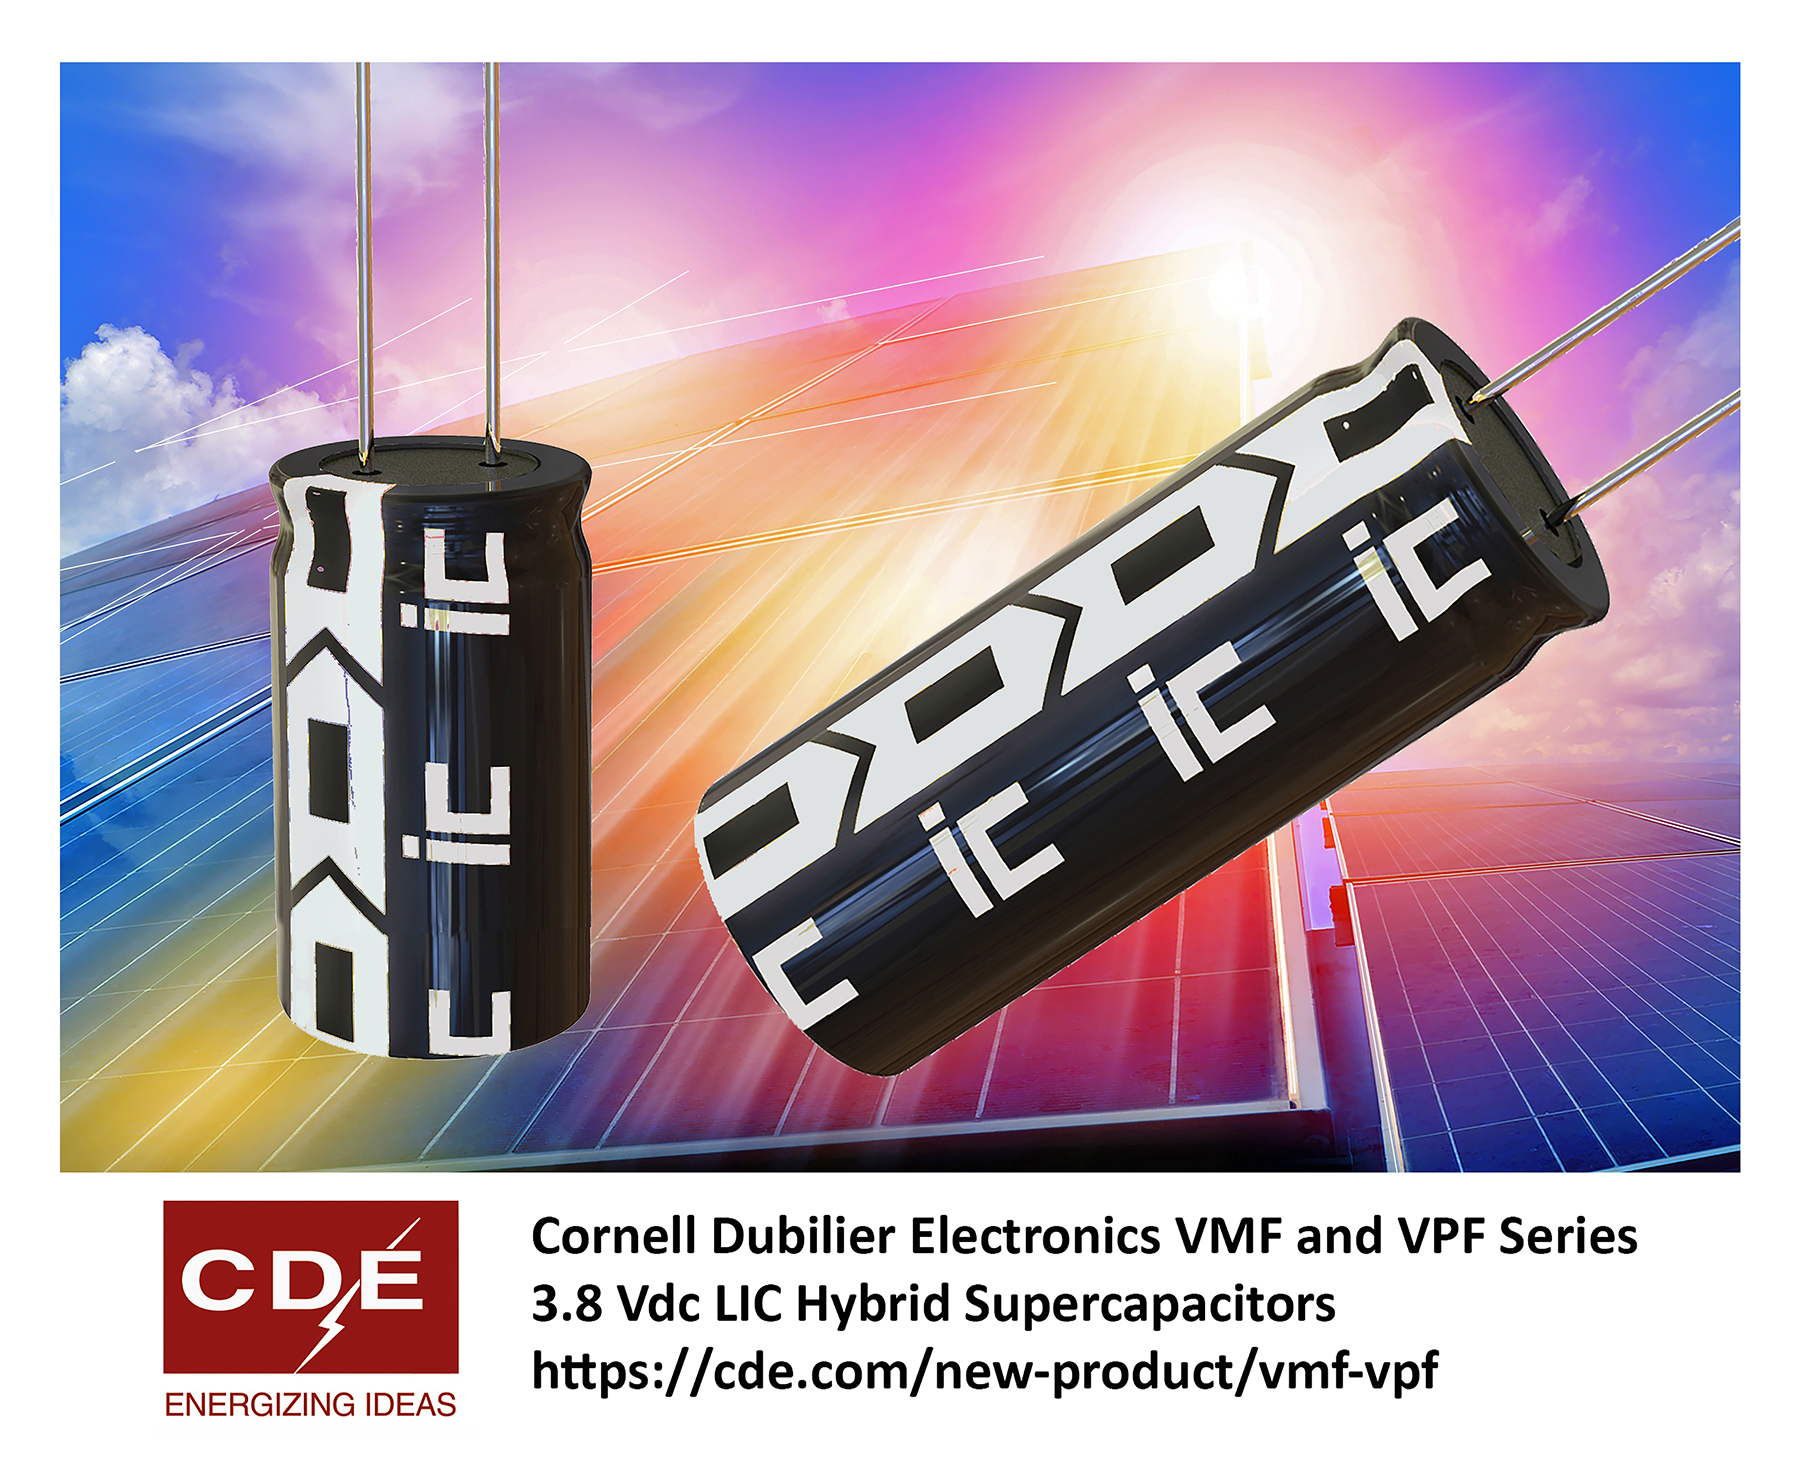 Hybrid Supercapacitors Deliver up to 220 Farads at 3.8 V